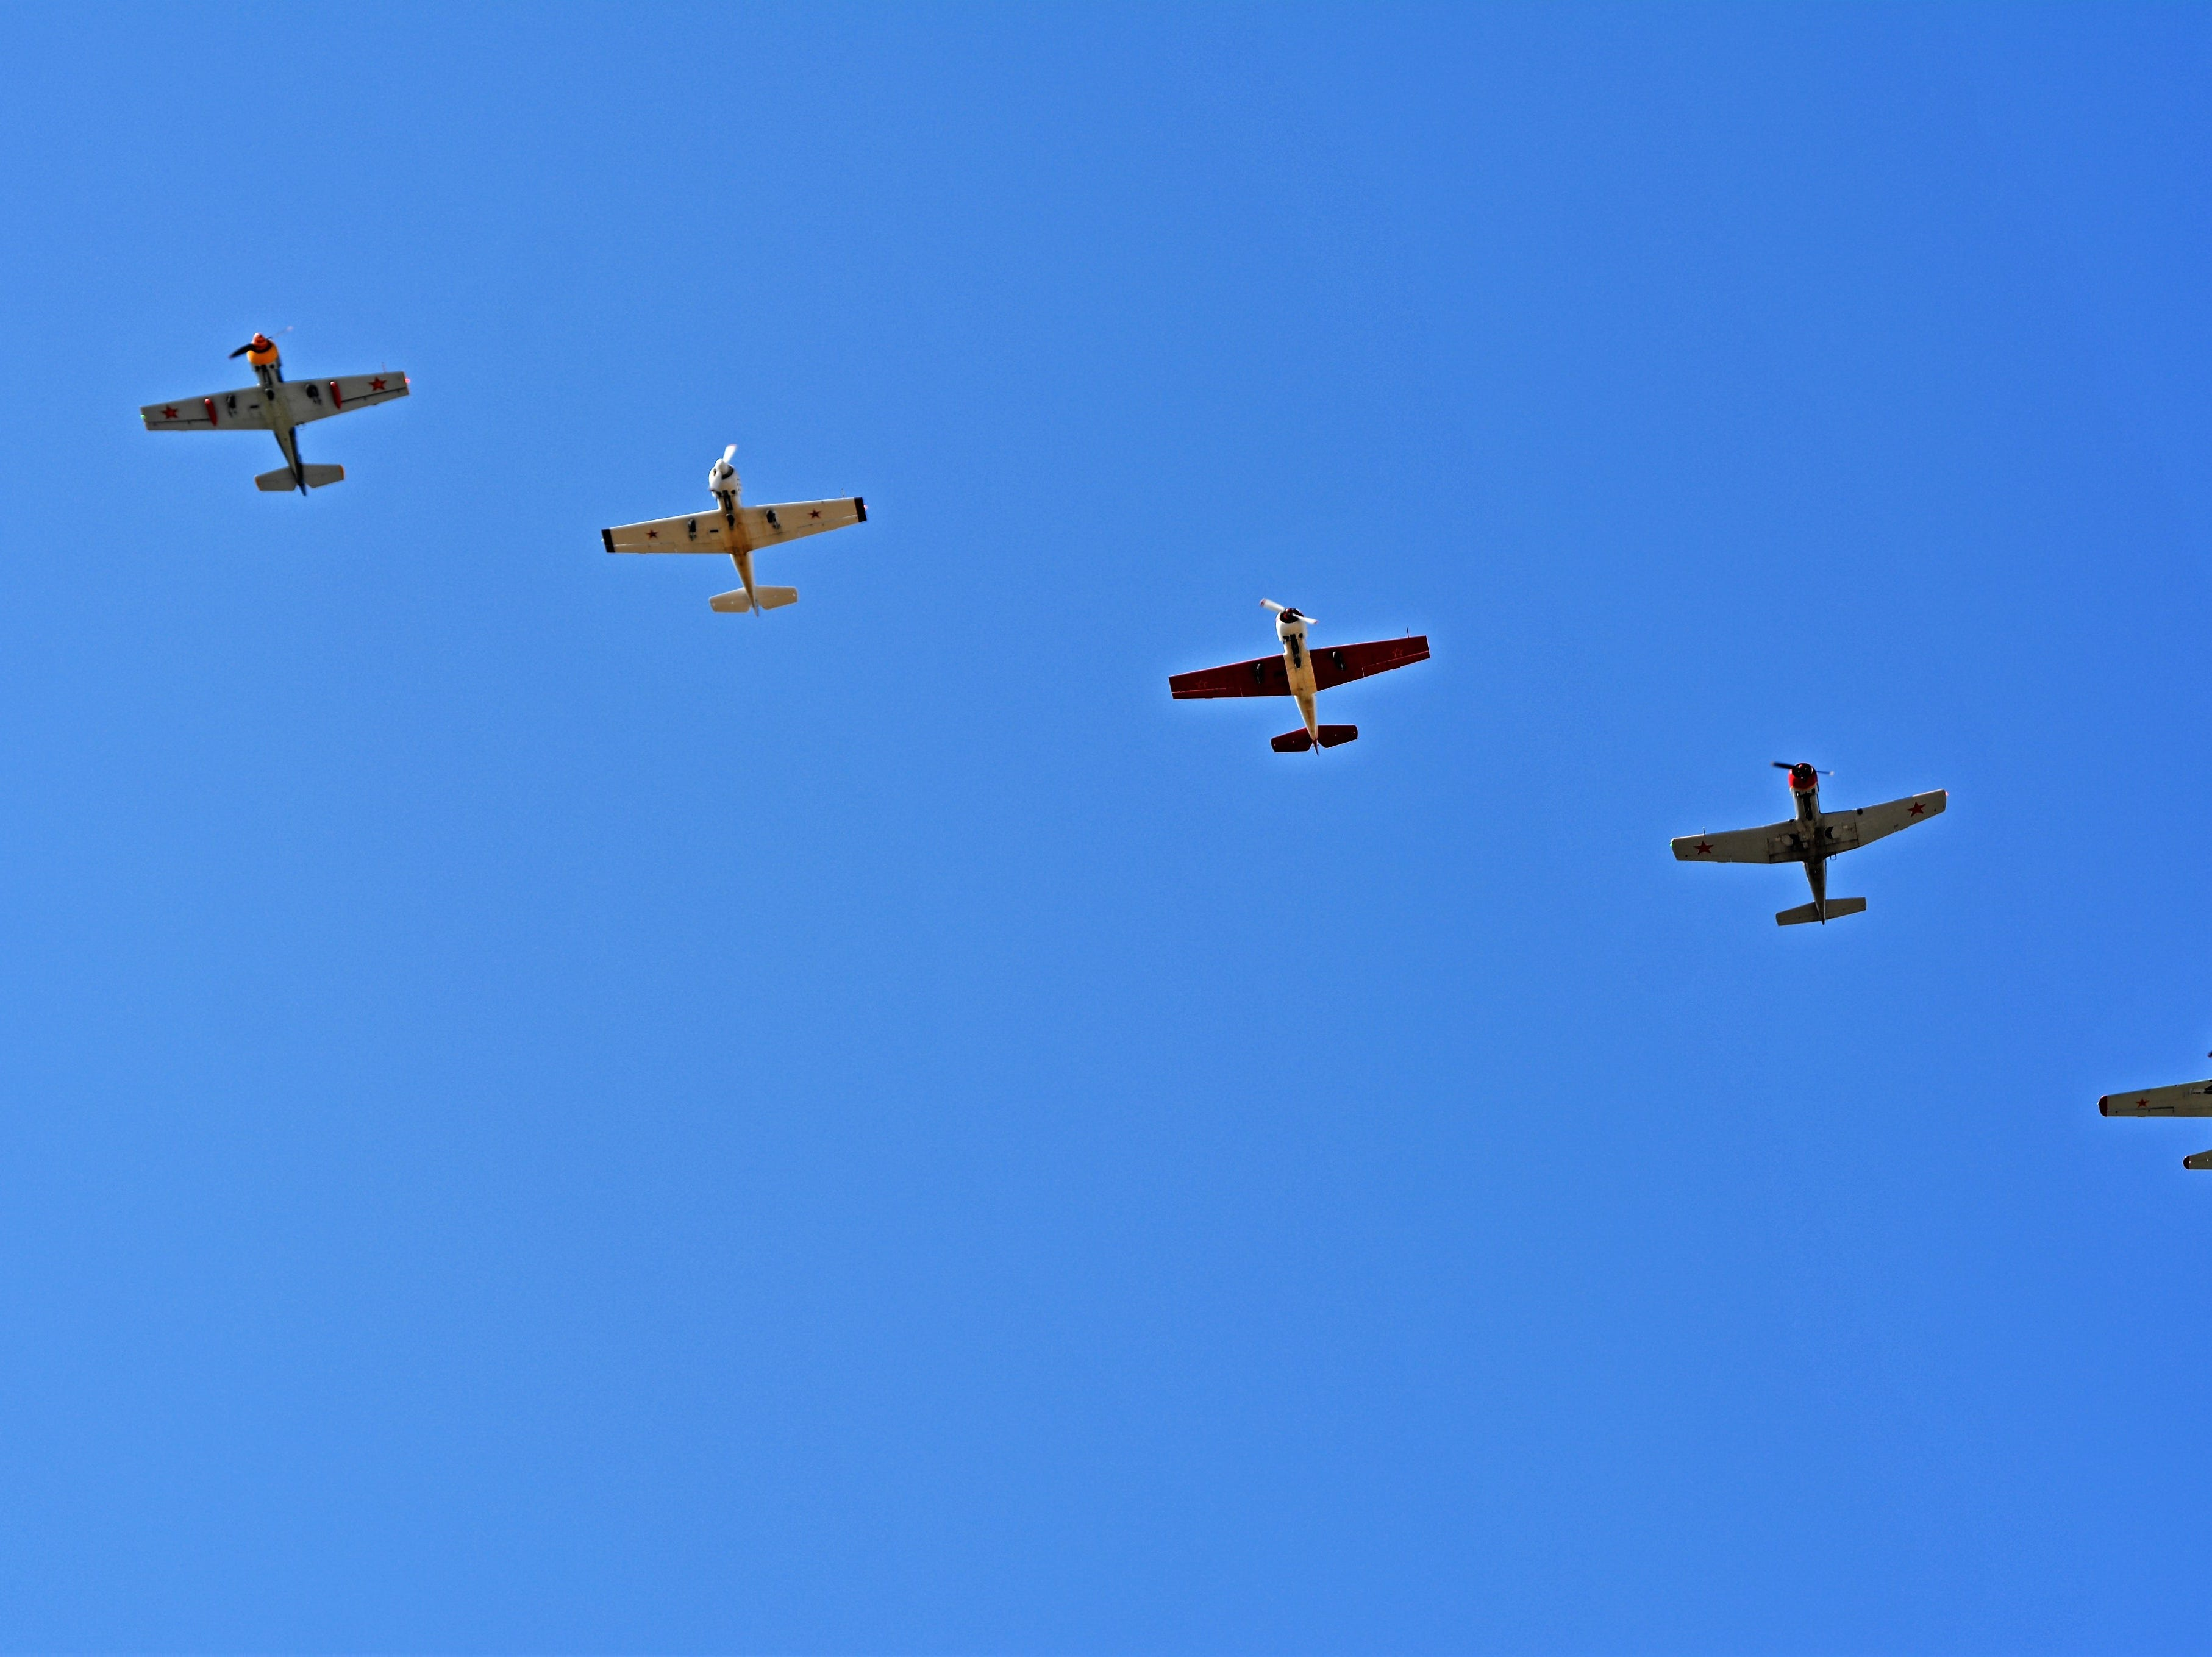 Planes fly in formation as part of a re-enactment during the Oconto Fly-in, Car & Tractor Show on Sept. 15 at the Oconto-J. Douglas Bake Municipal Airport.